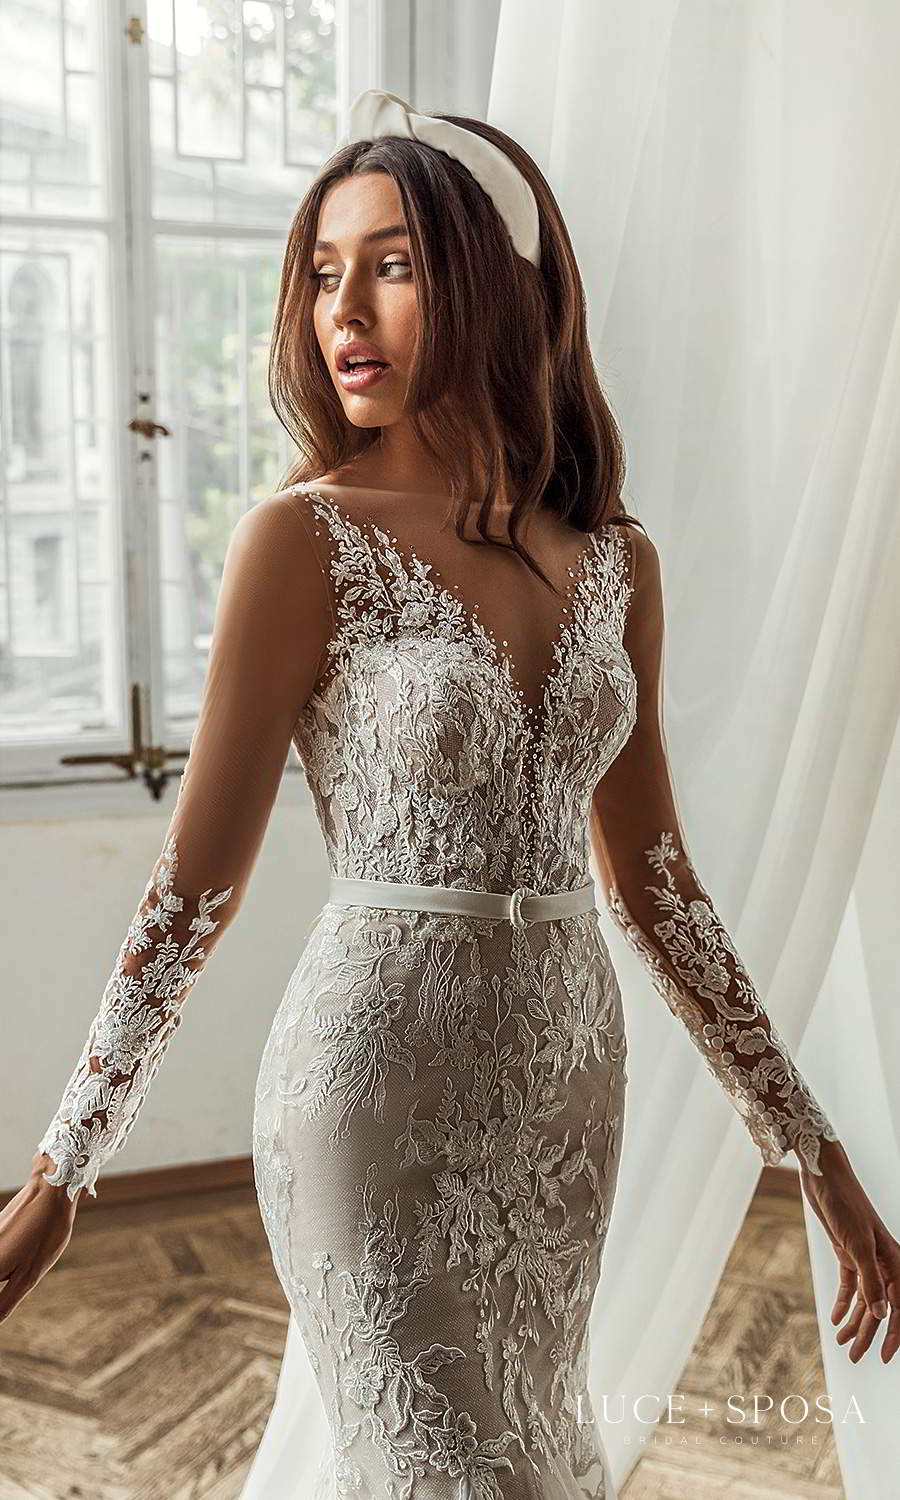 luce sposa 2021 shades of couture bridal long sleeves v neckline fully embellished fit flare wedding dress chapel train (peyton) zv